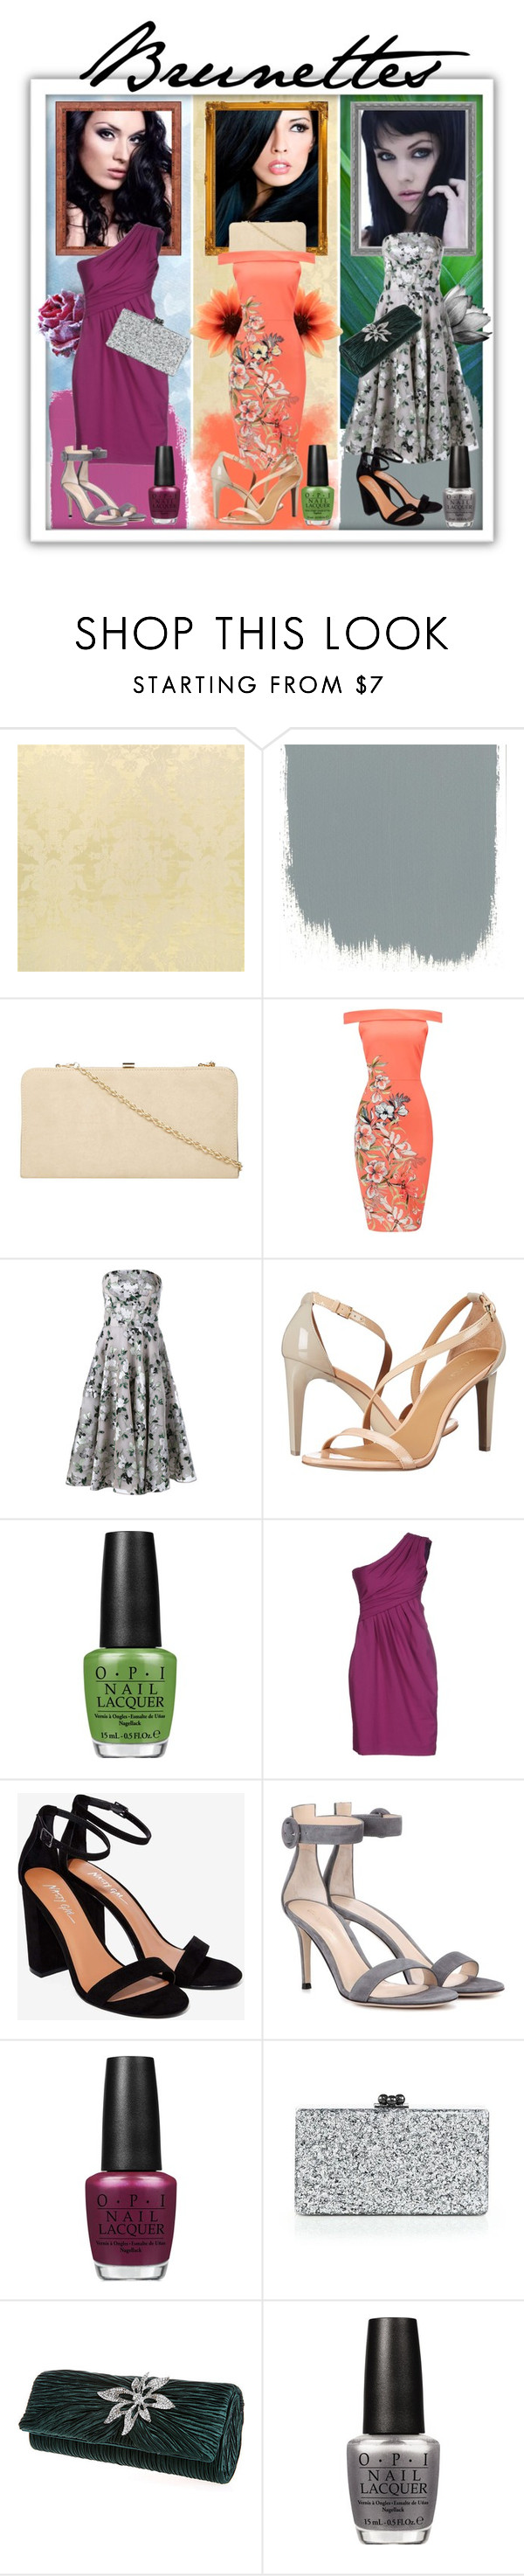 """""""Three looks for brunettes ( Три образа для брюнеток)"""" by kseniz13 ❤ liked on Polyvore featuring Dorothy Perkins, Alexander McQueen, Calvin Klein, OPI, Moschino Cheap & Chic, Gianvito Rossi and Edie Parker"""